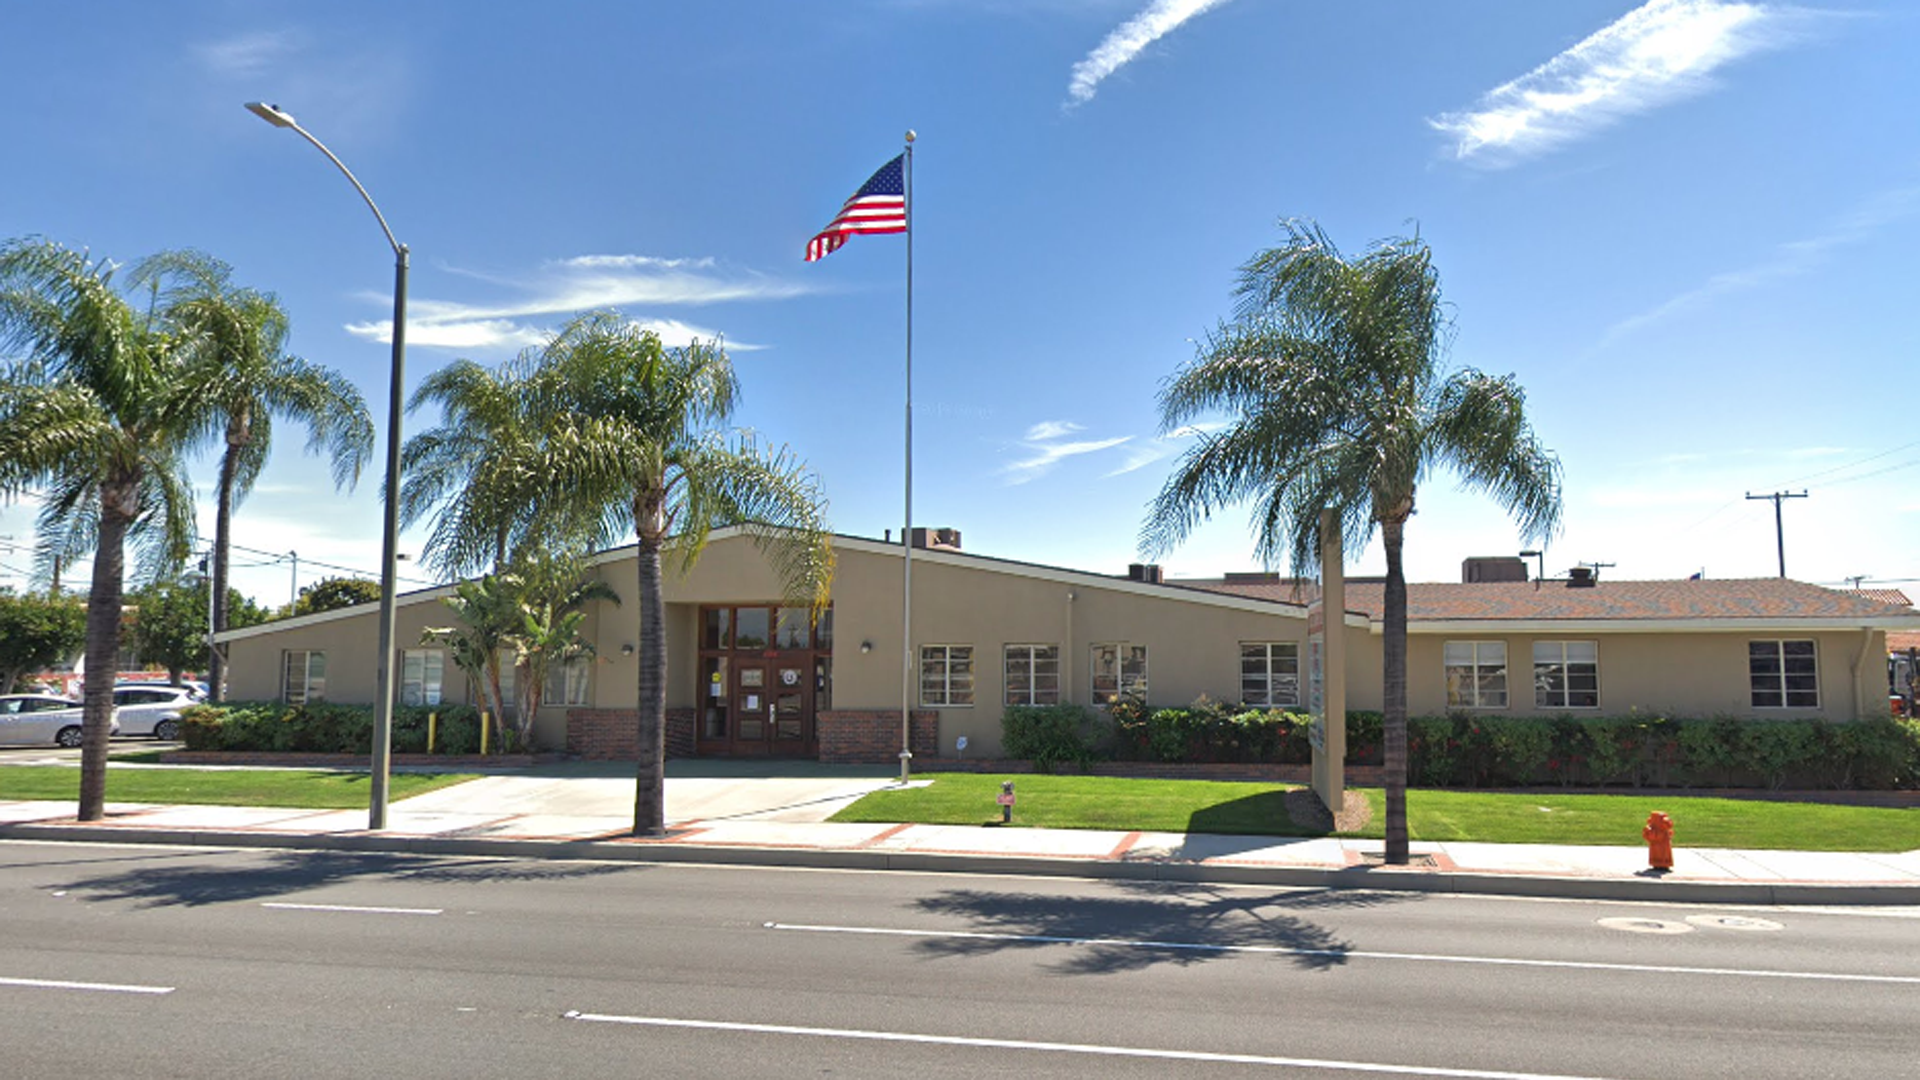 The headquarters of the Democratic Party of Orange County is shown in a Street View image from Google Maps.